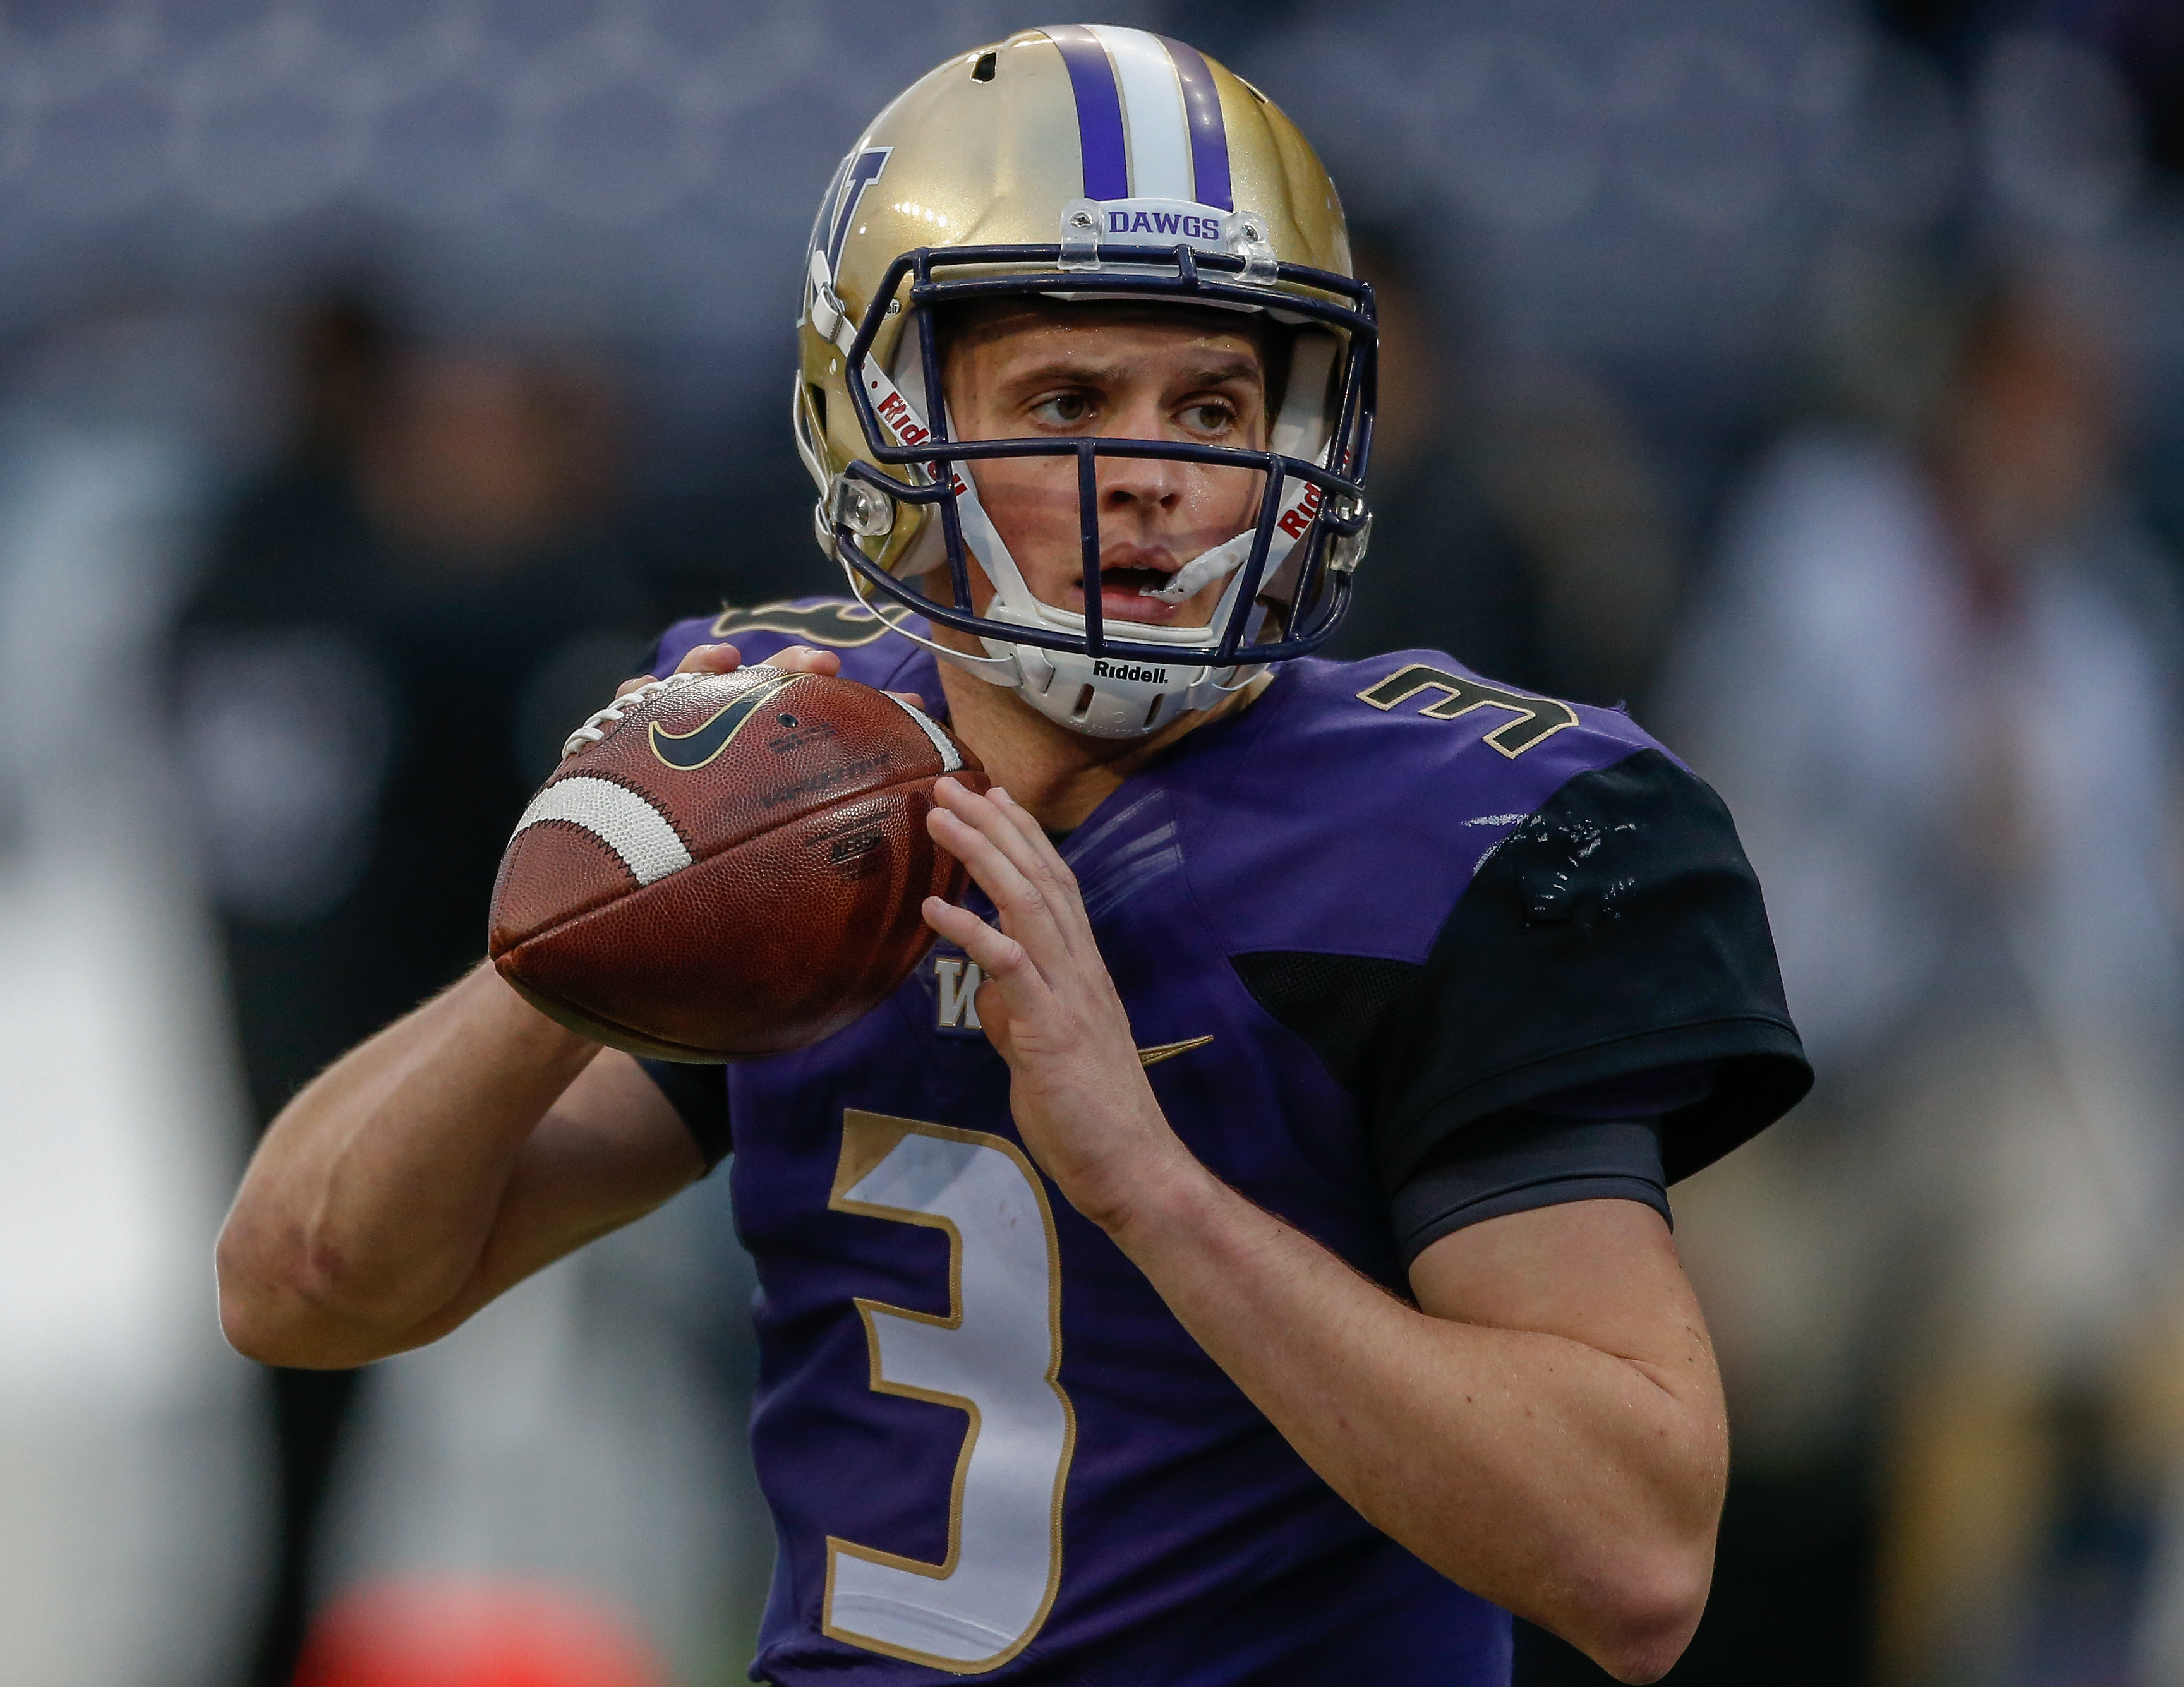 WATCH: Huskies Strike First With Browning TD Pass